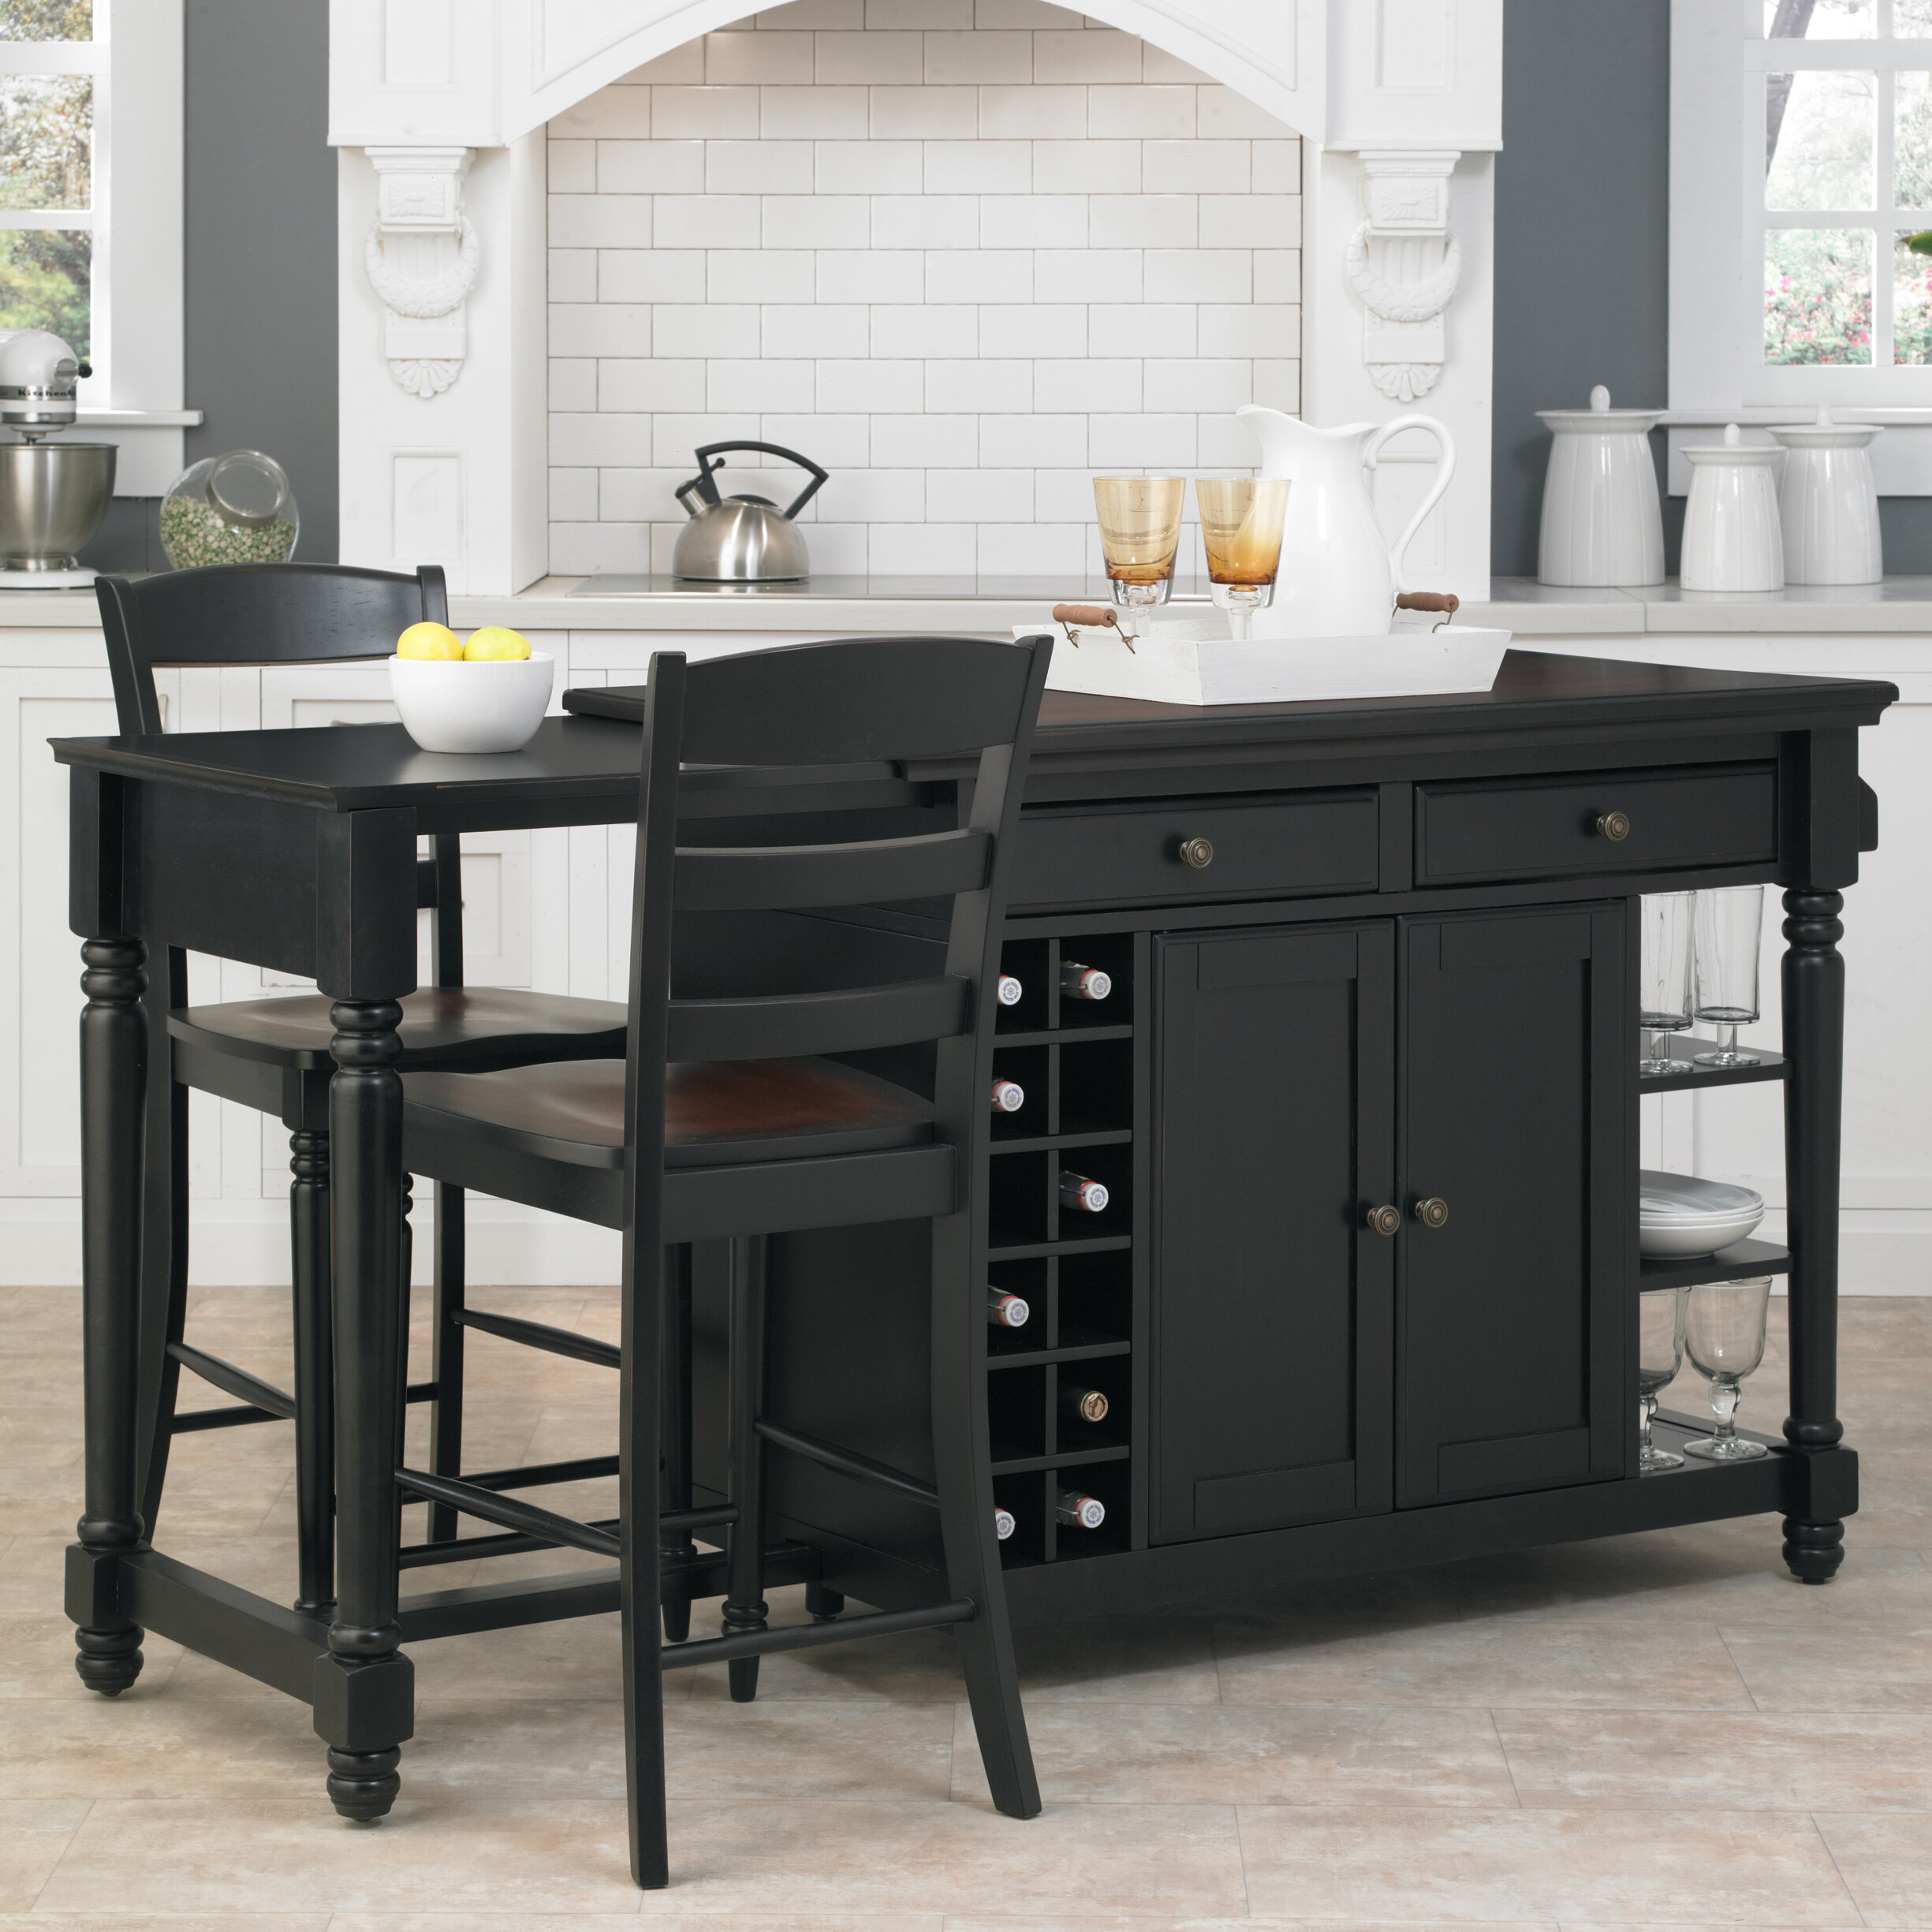 Darby Home Co Cleanhill 3 Piece Kitchen Island Set & Reviews